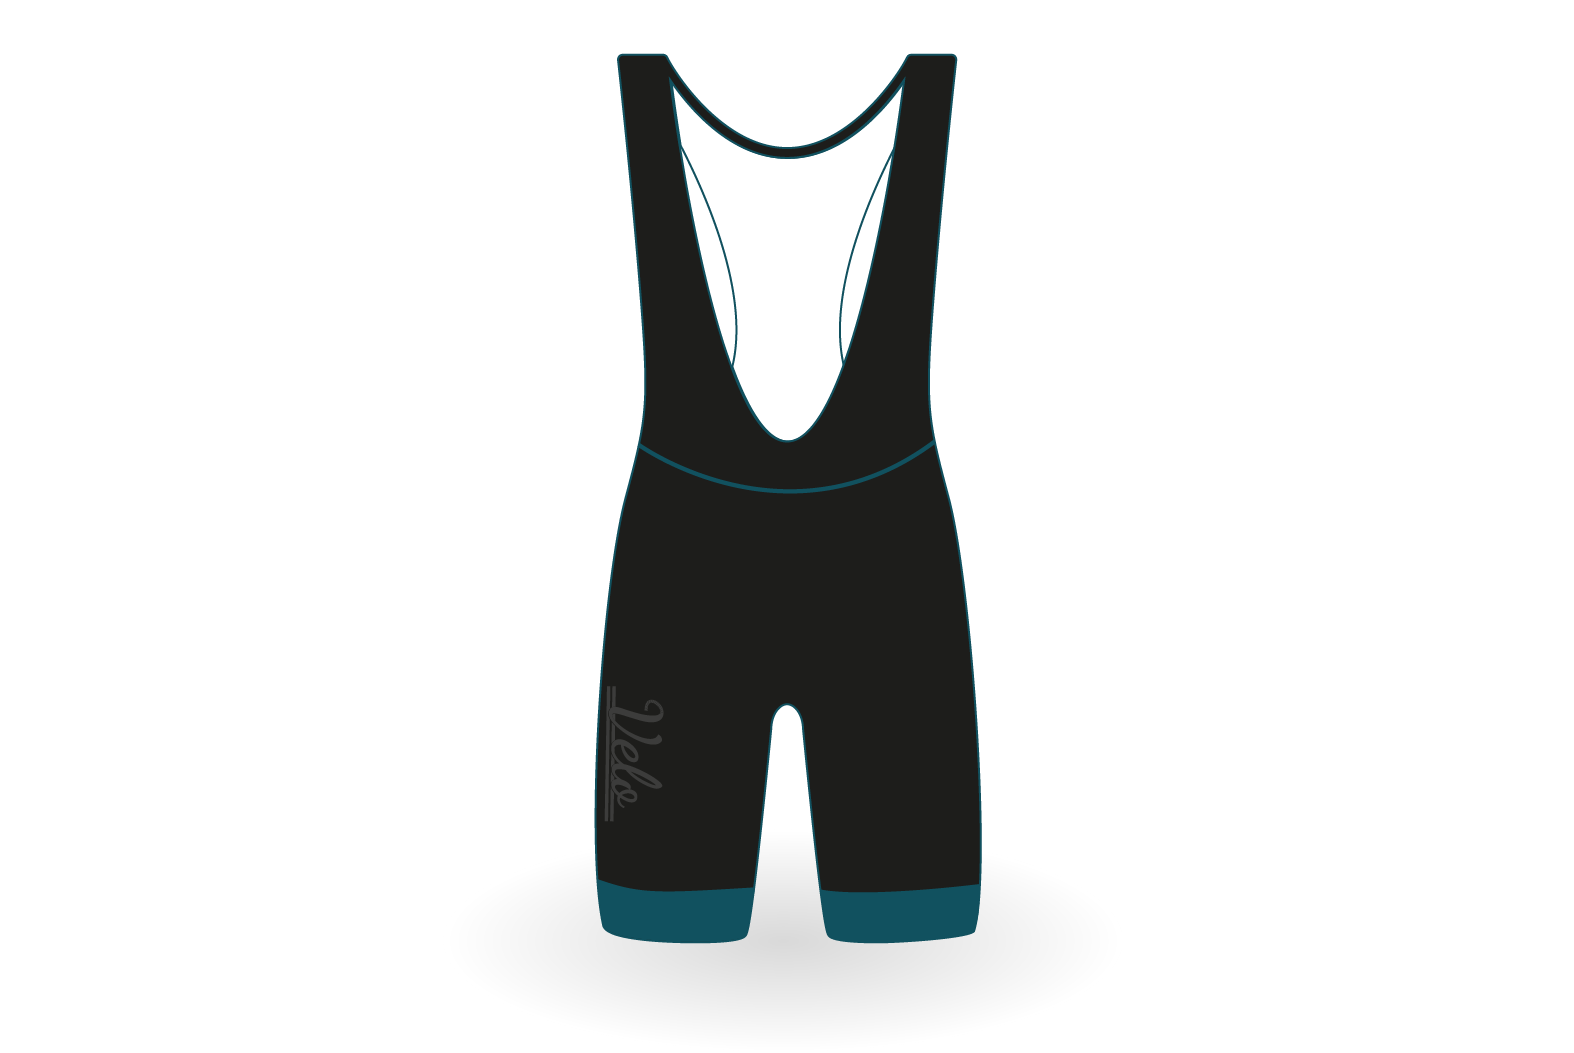 Bike BibShorts